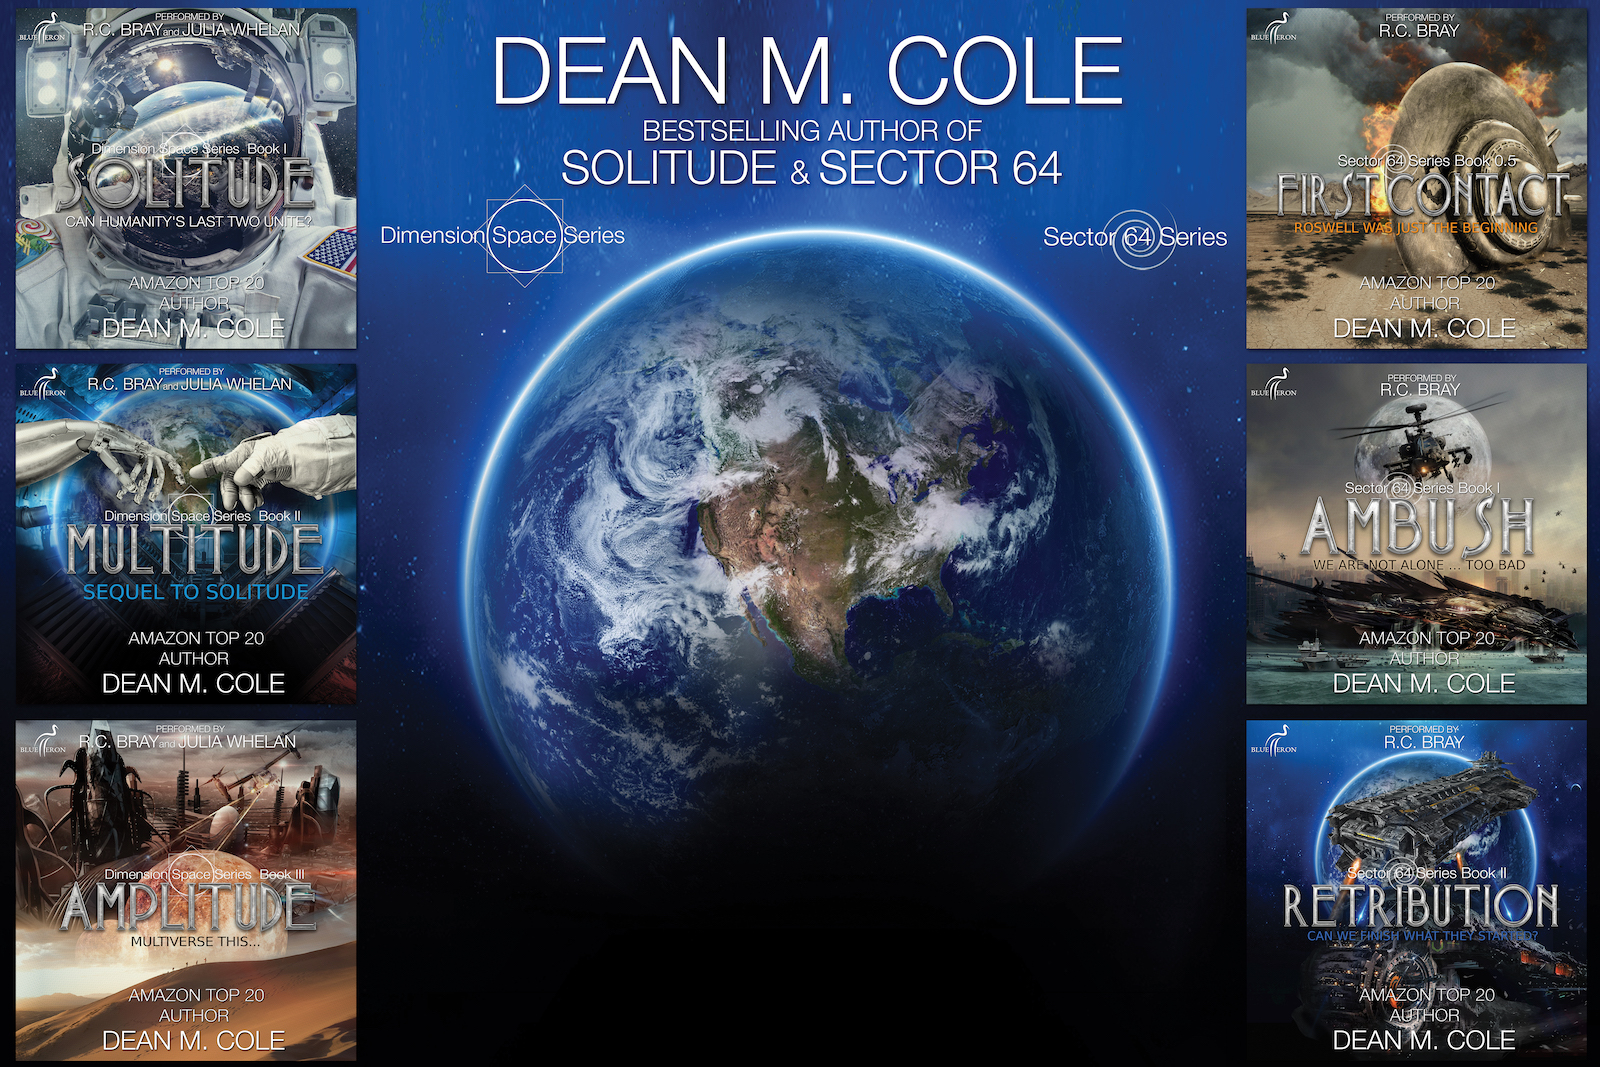 Poster Featuring Dean's Book Covers 30